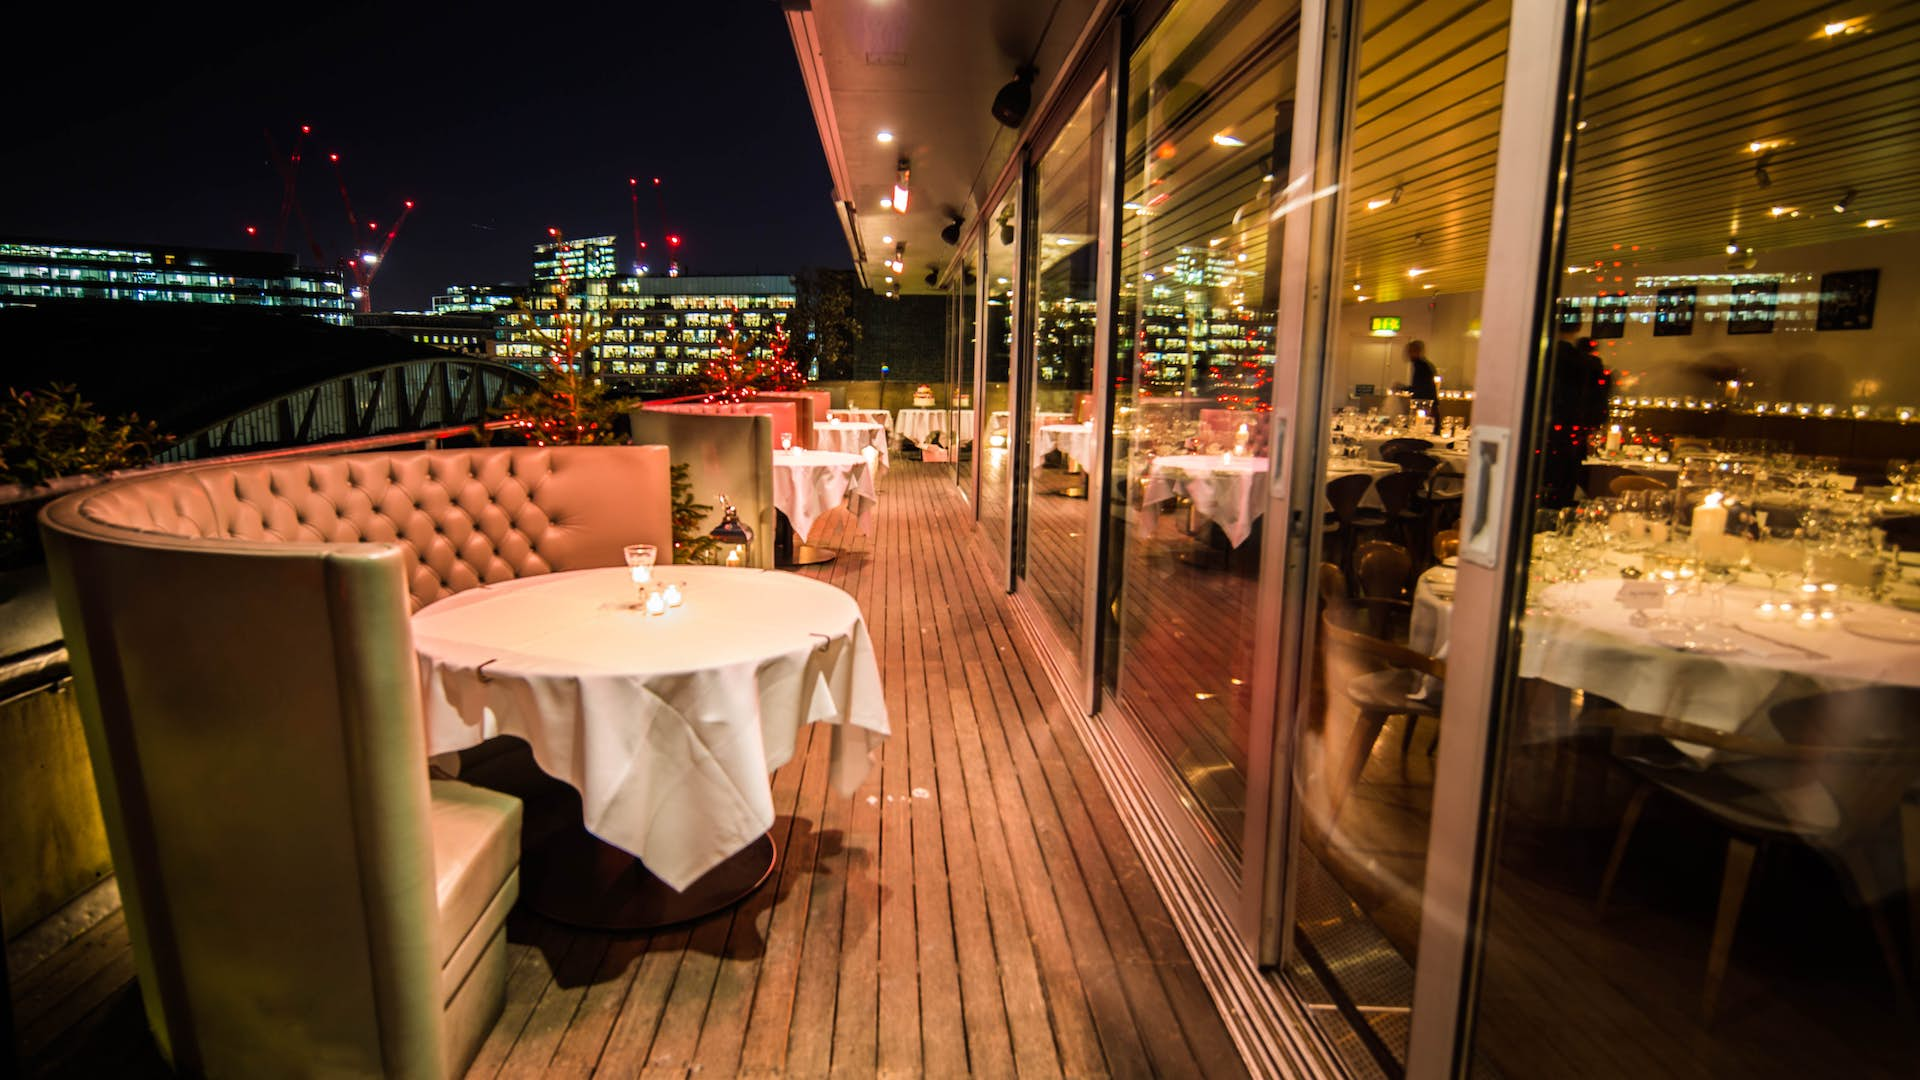 The Top Floor Restaurant & Terrace at Smith's of Smithfield